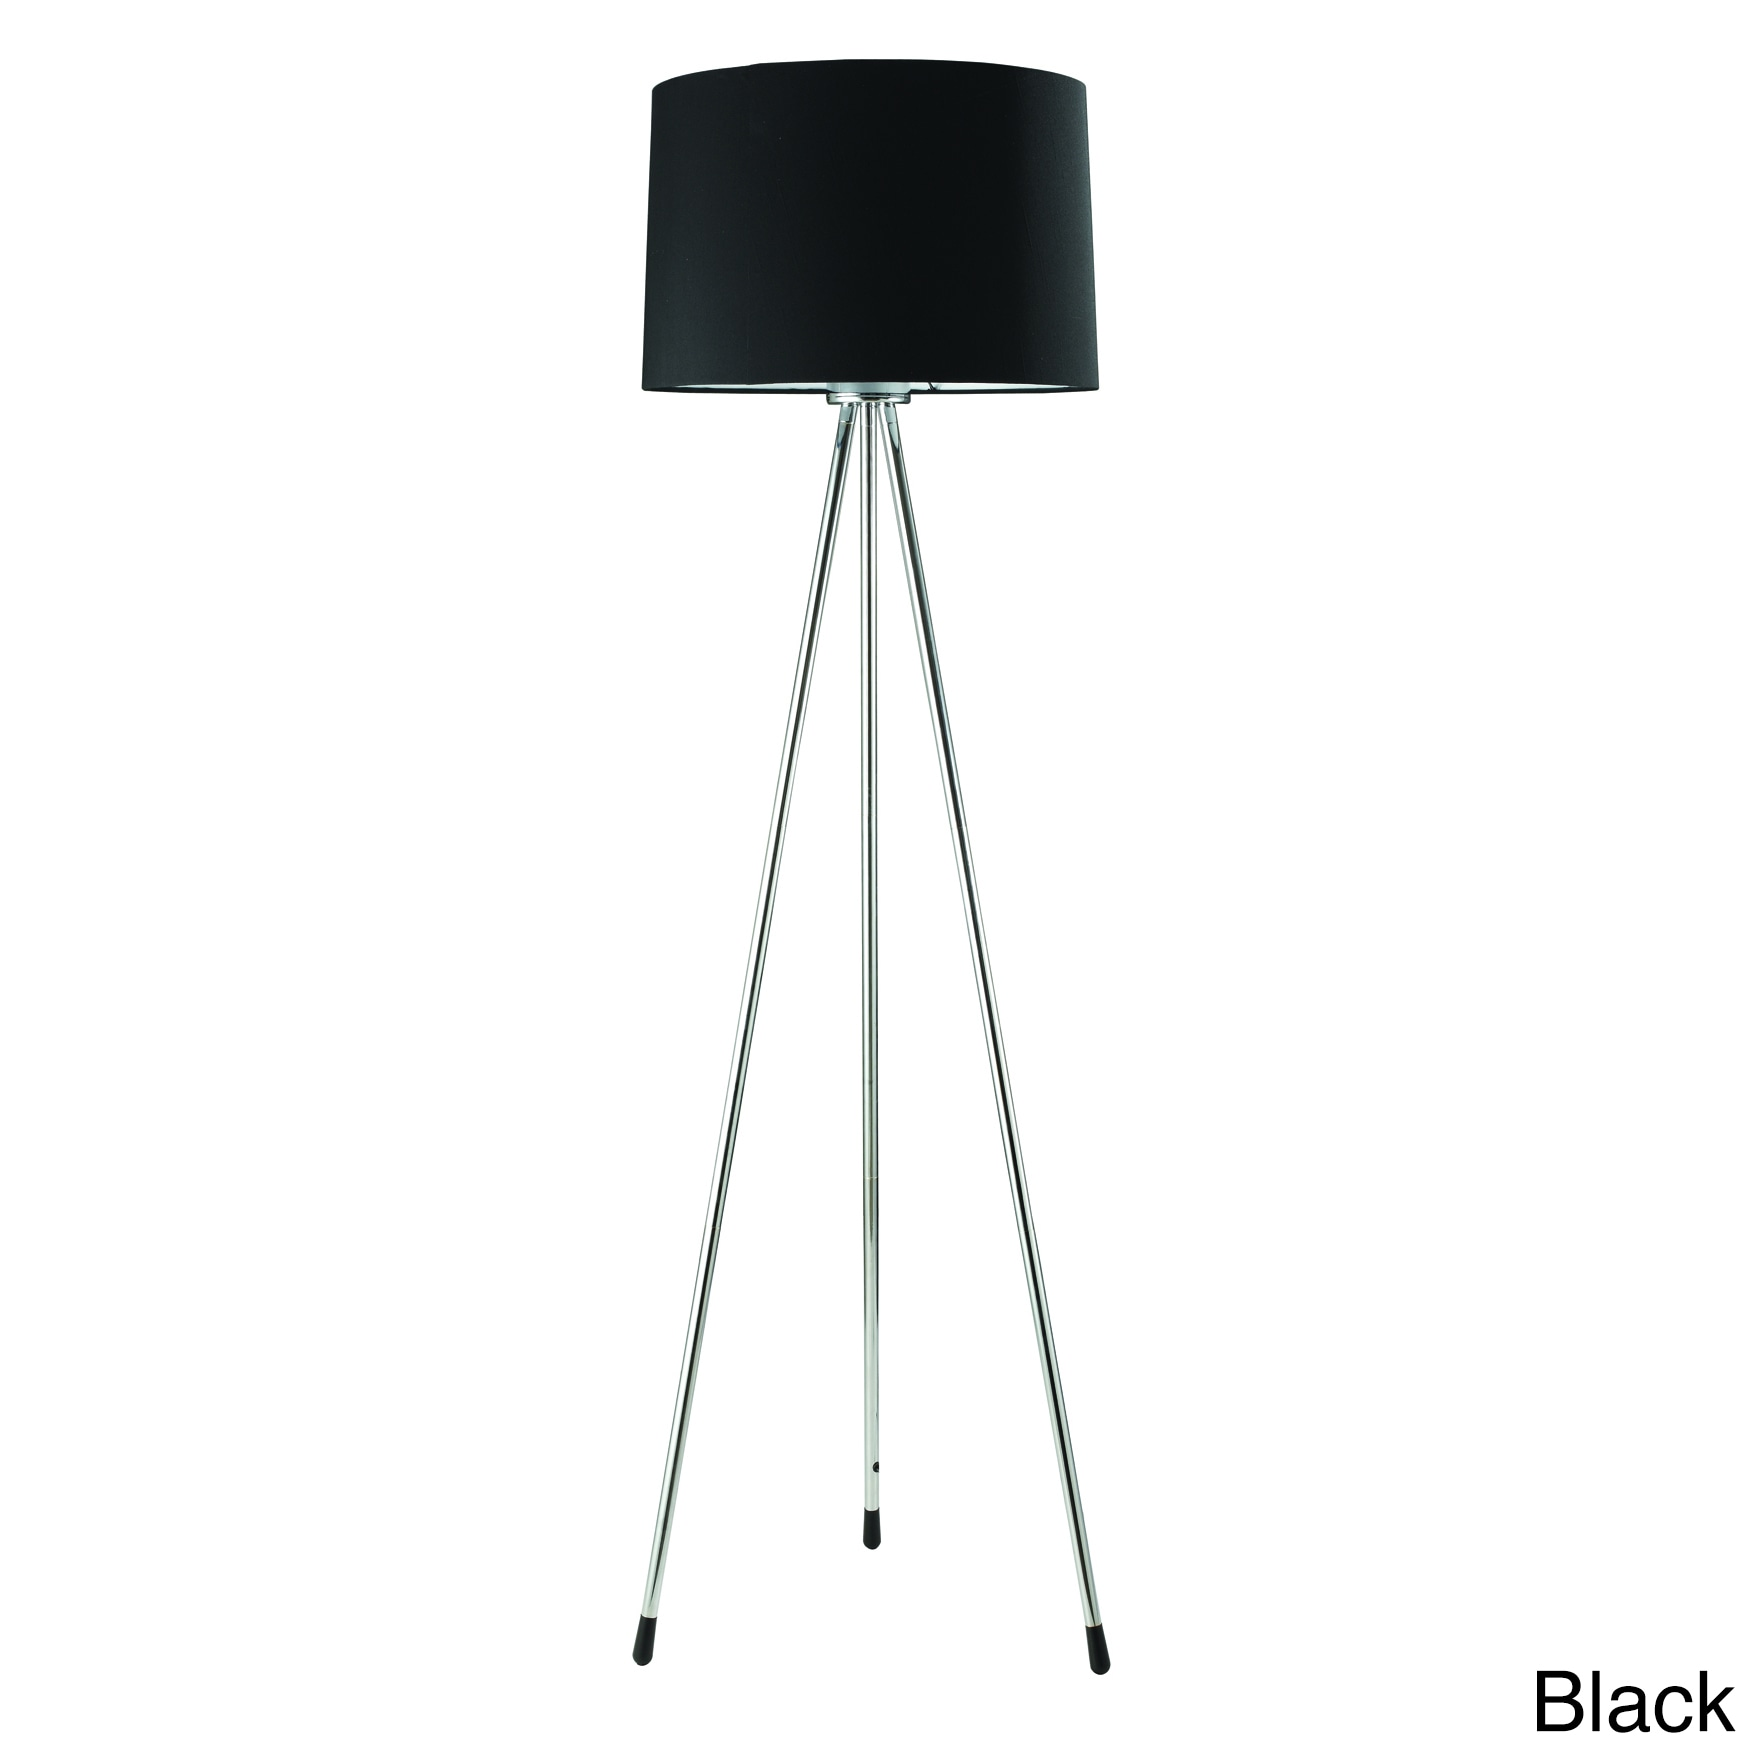 legged floor lamp overstock shopping great deals on floor lamps. Black Bedroom Furniture Sets. Home Design Ideas